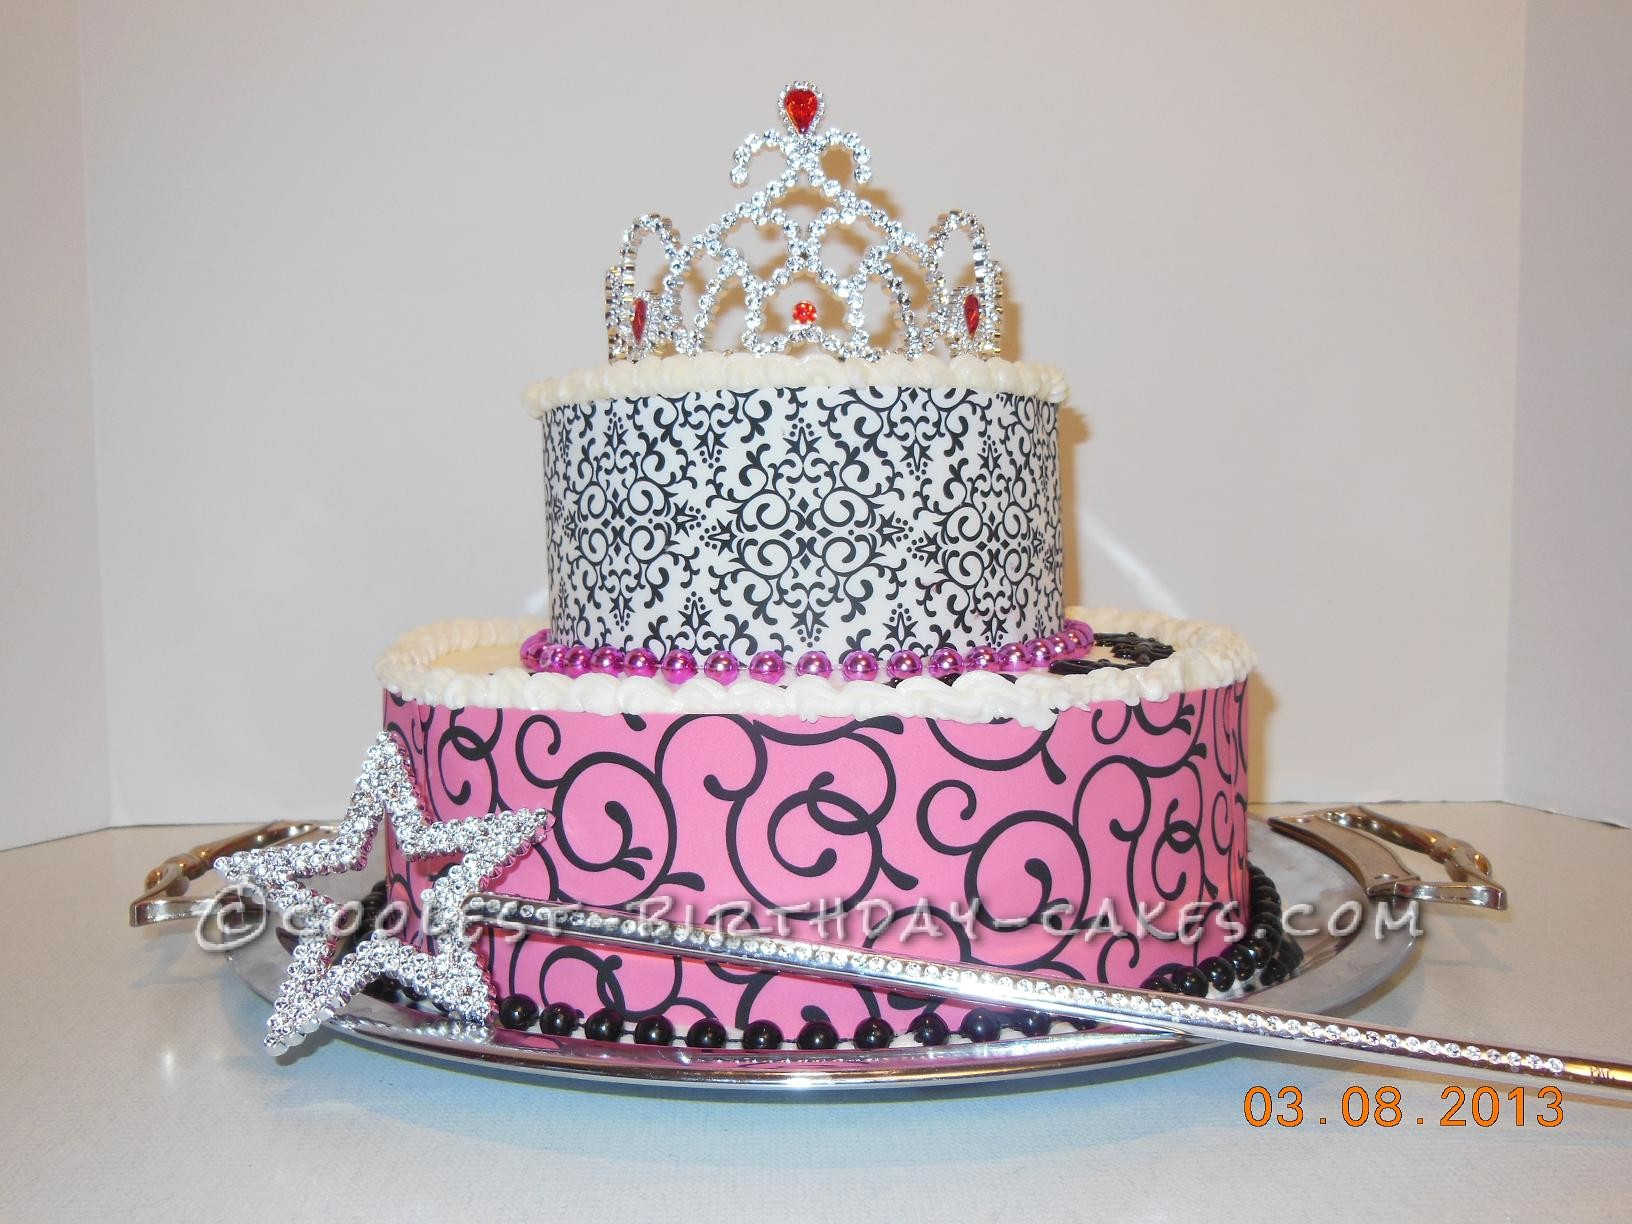 40 Year Old Diva Birthday Cake